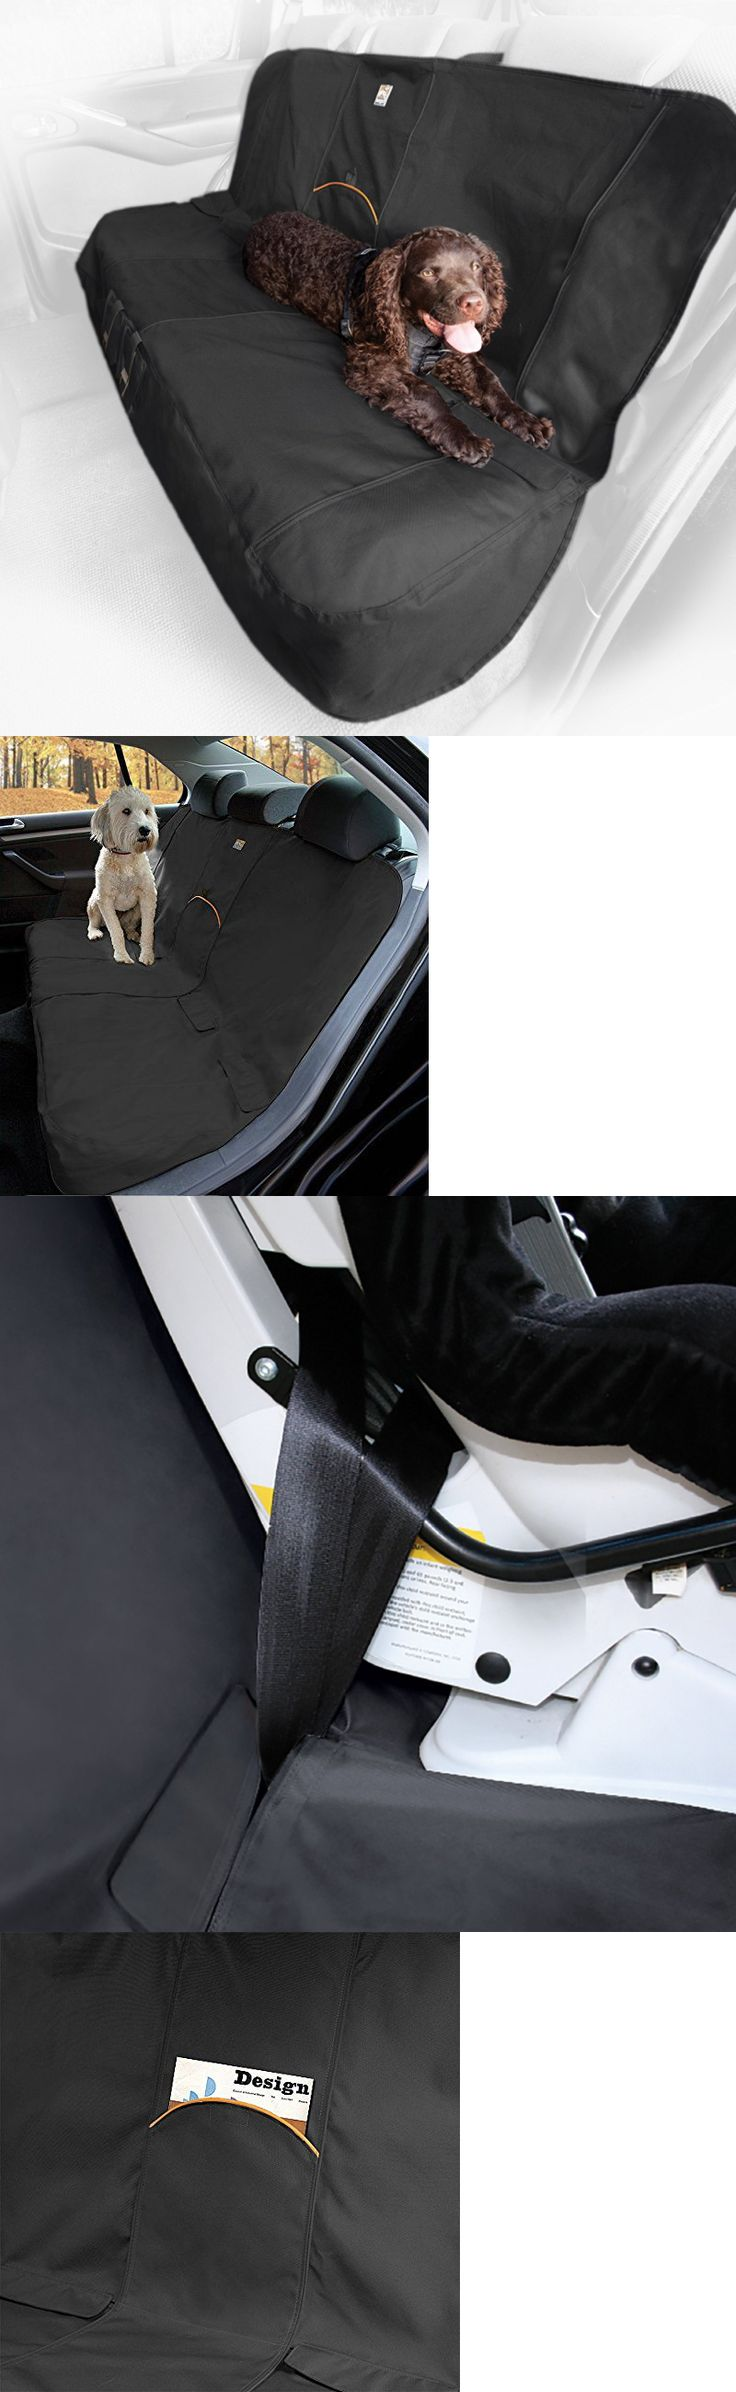 Car Seat Covers 117426: Kurgo Waterproof Car Bench Seat Cover For Dogs Lifetime Warranty Pet Supplies BUY IT NOW ONLY: $43.85